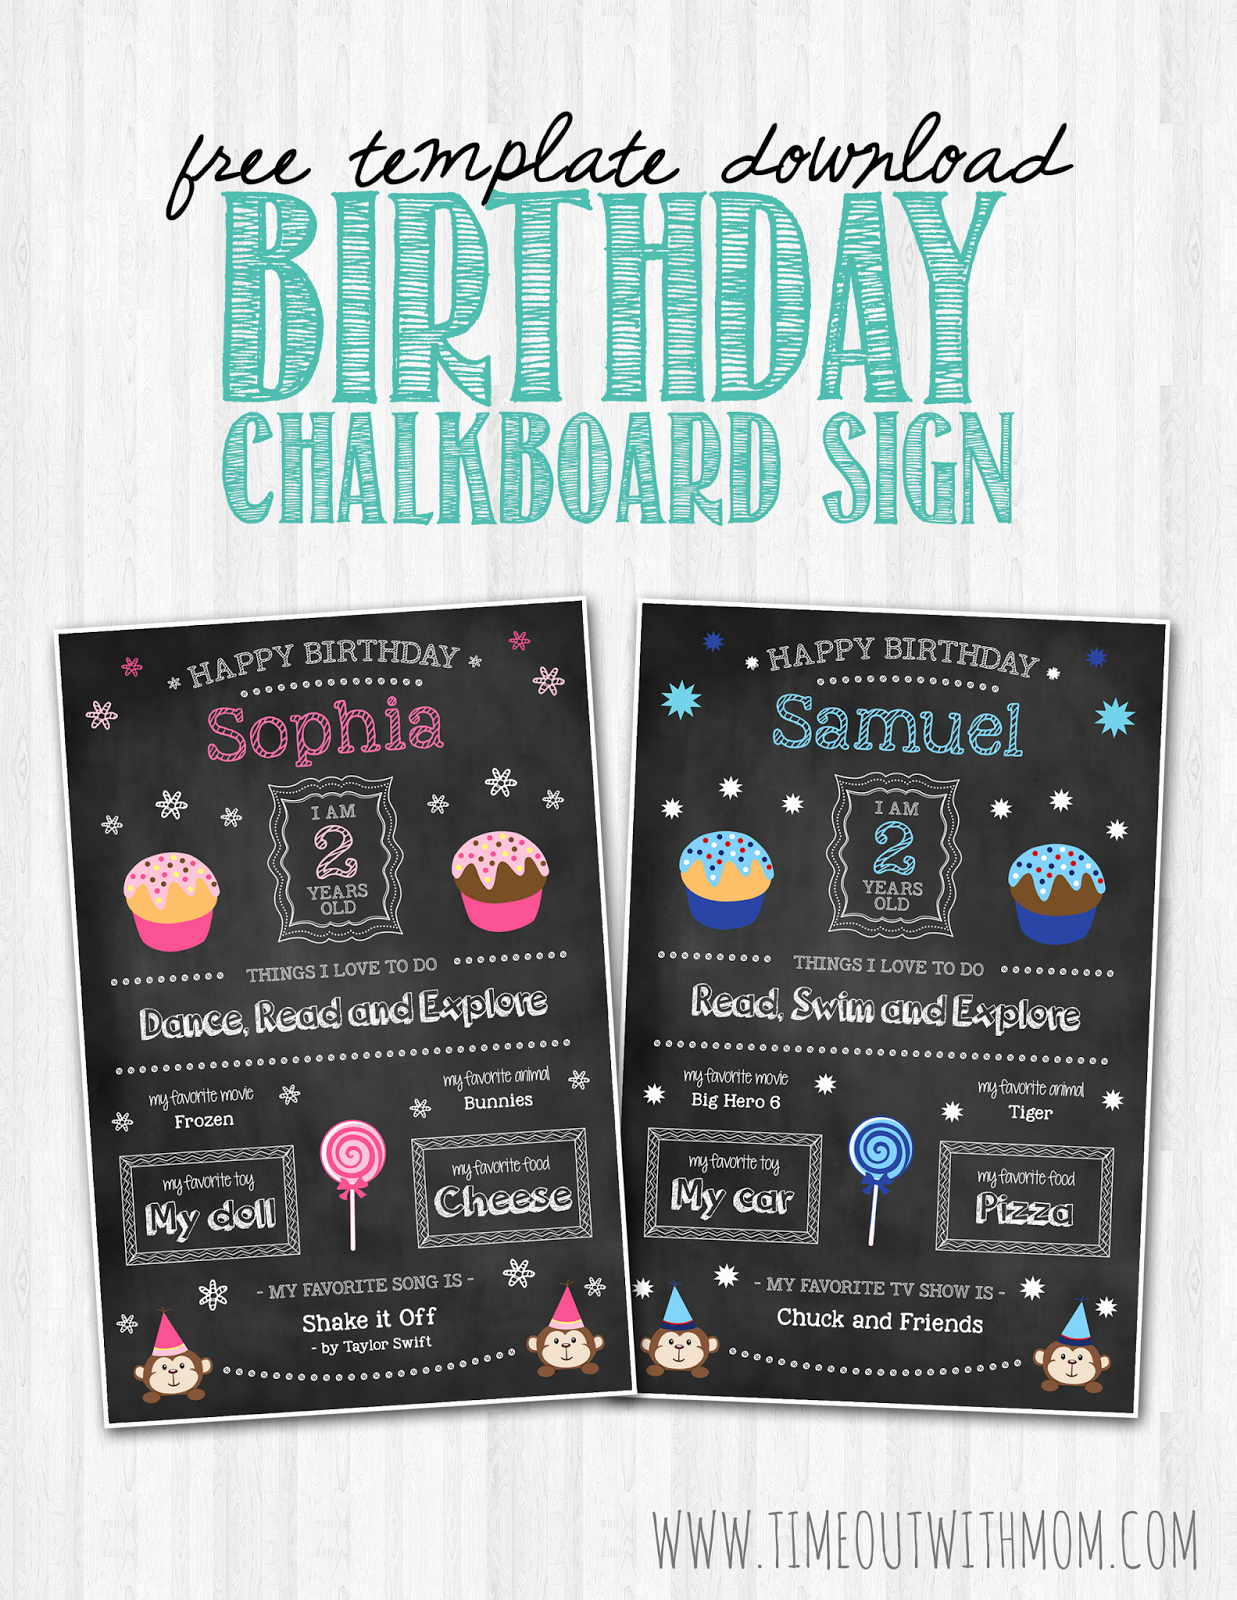 Birthday Chalkboard Template New Birthday Chalkboard Sign Template and Tutorial